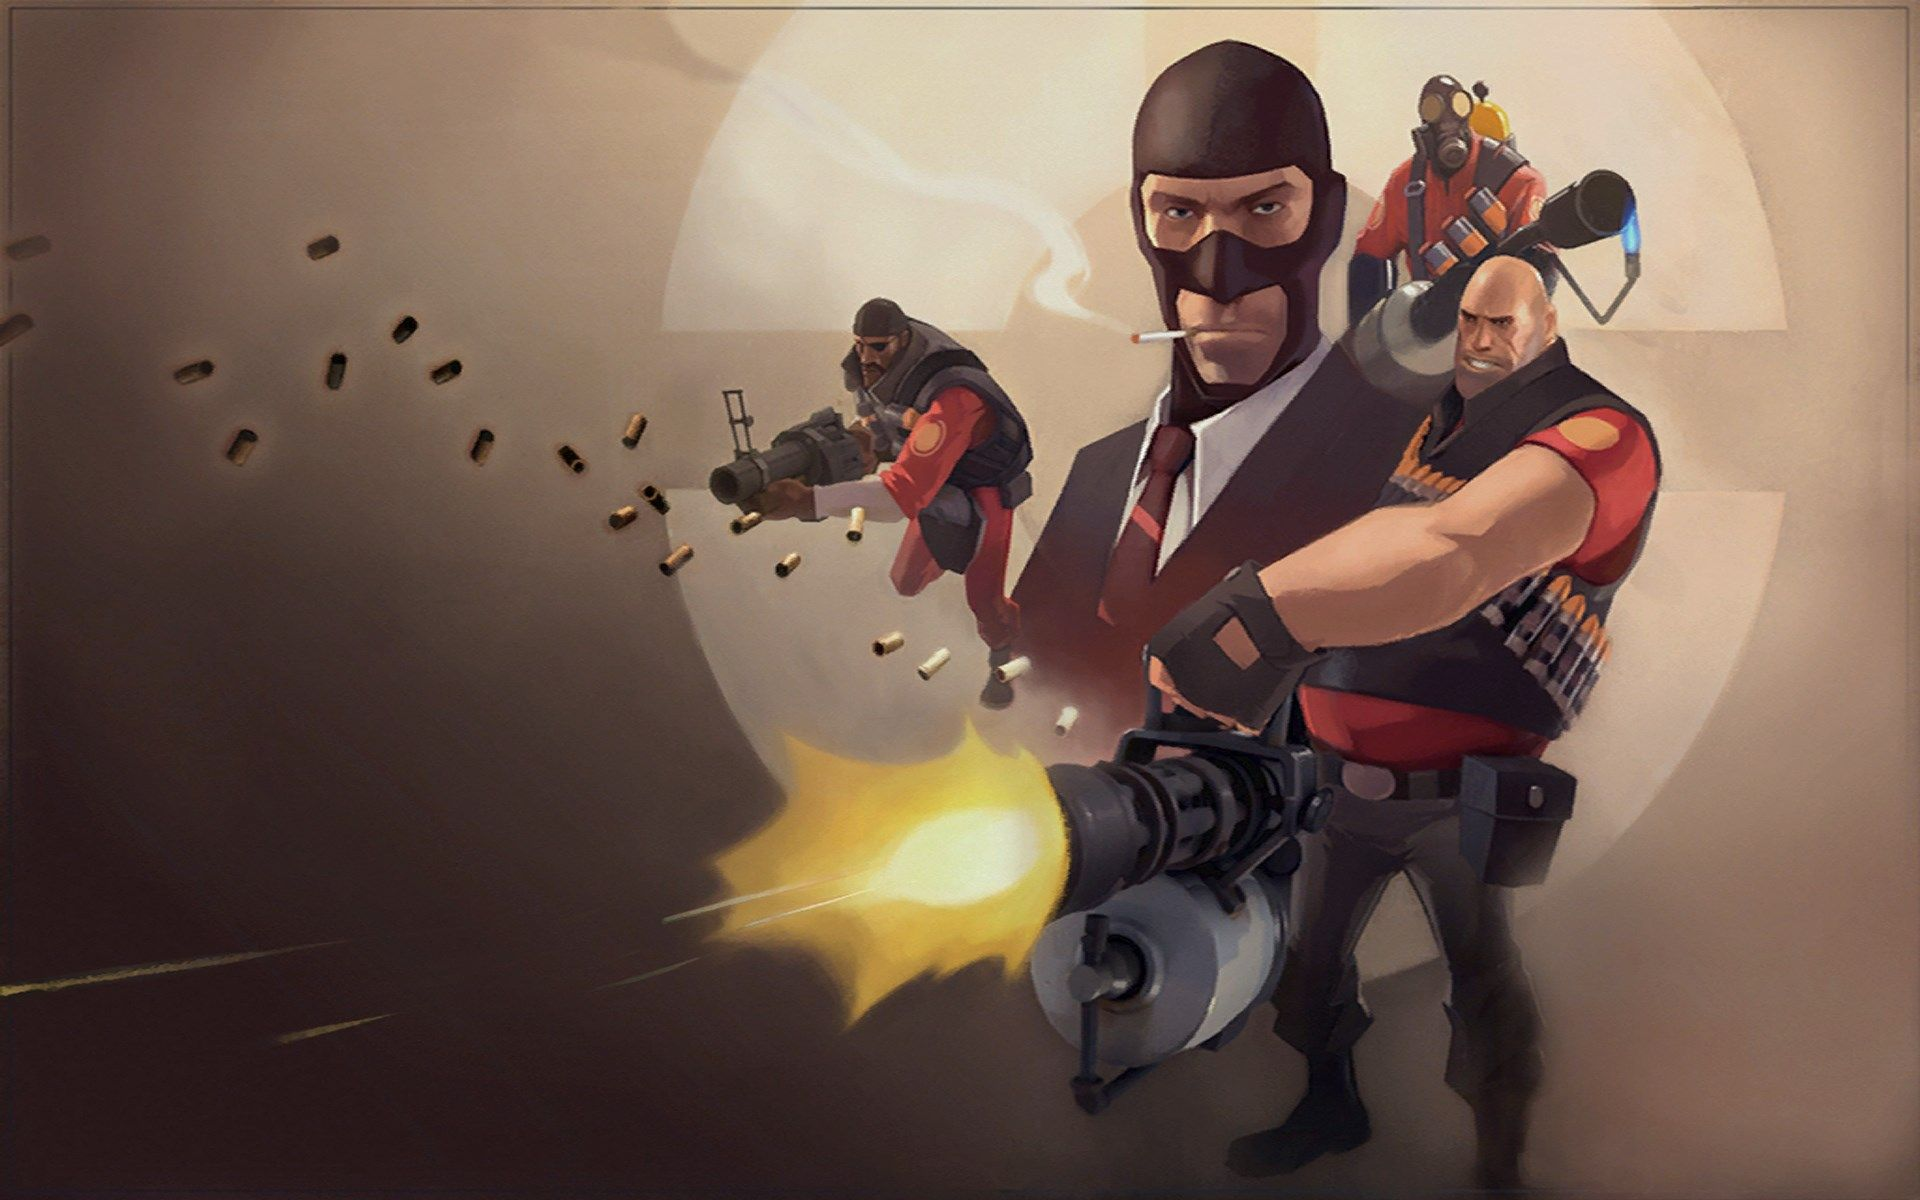 Wallpaper Images Team Fortress 2 Team Fortress 2 Team Fortress Fortress 2